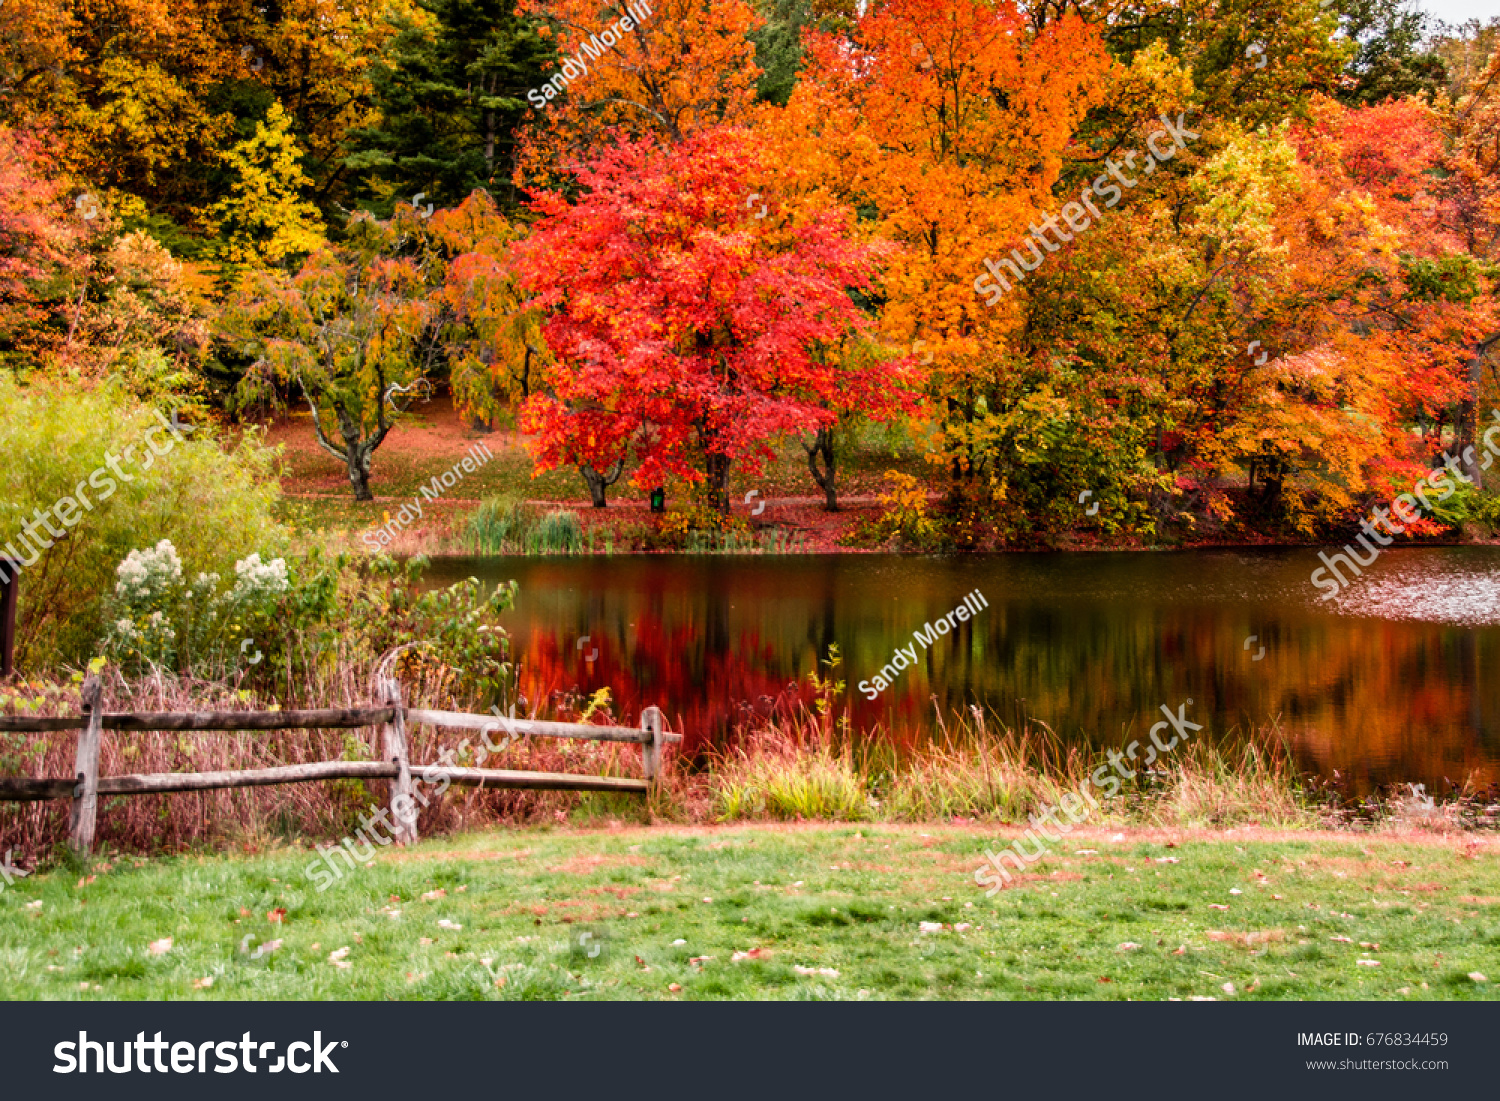 Fall scene with fence and lake #676834459